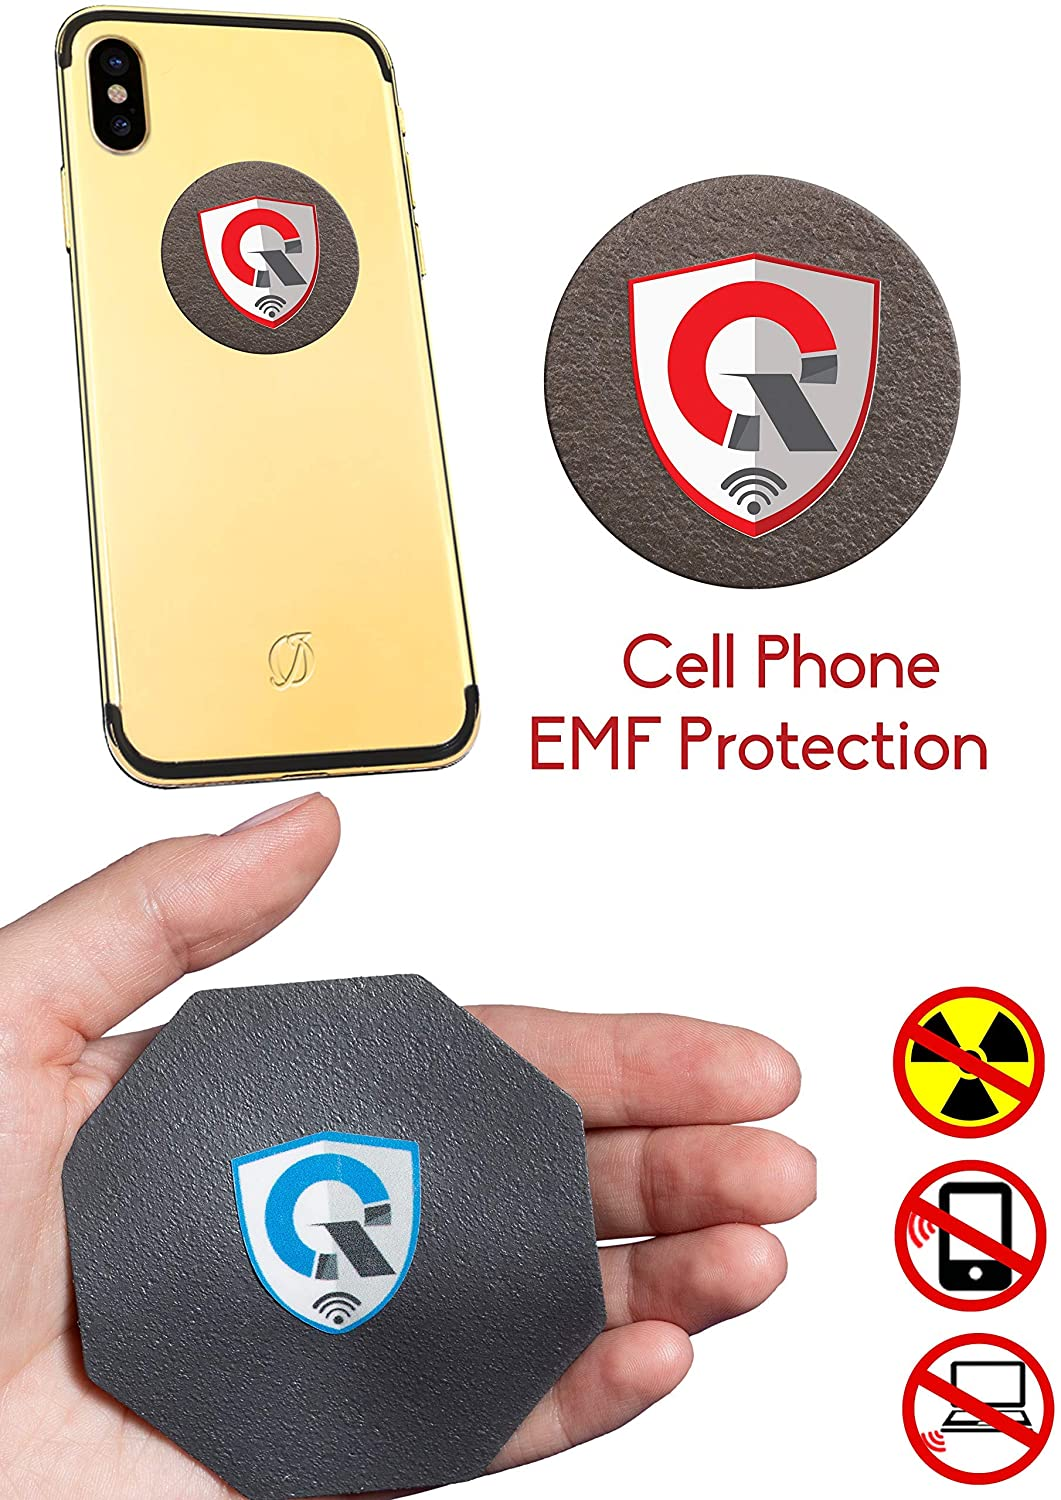 Best EMF Protection Cell Phone : Radiation Protection Tesla Technology EMF Shield WiFi, Laptop-All Devices| Global Awards Anti Radiation Shield, EMF Blocker Neutralizer